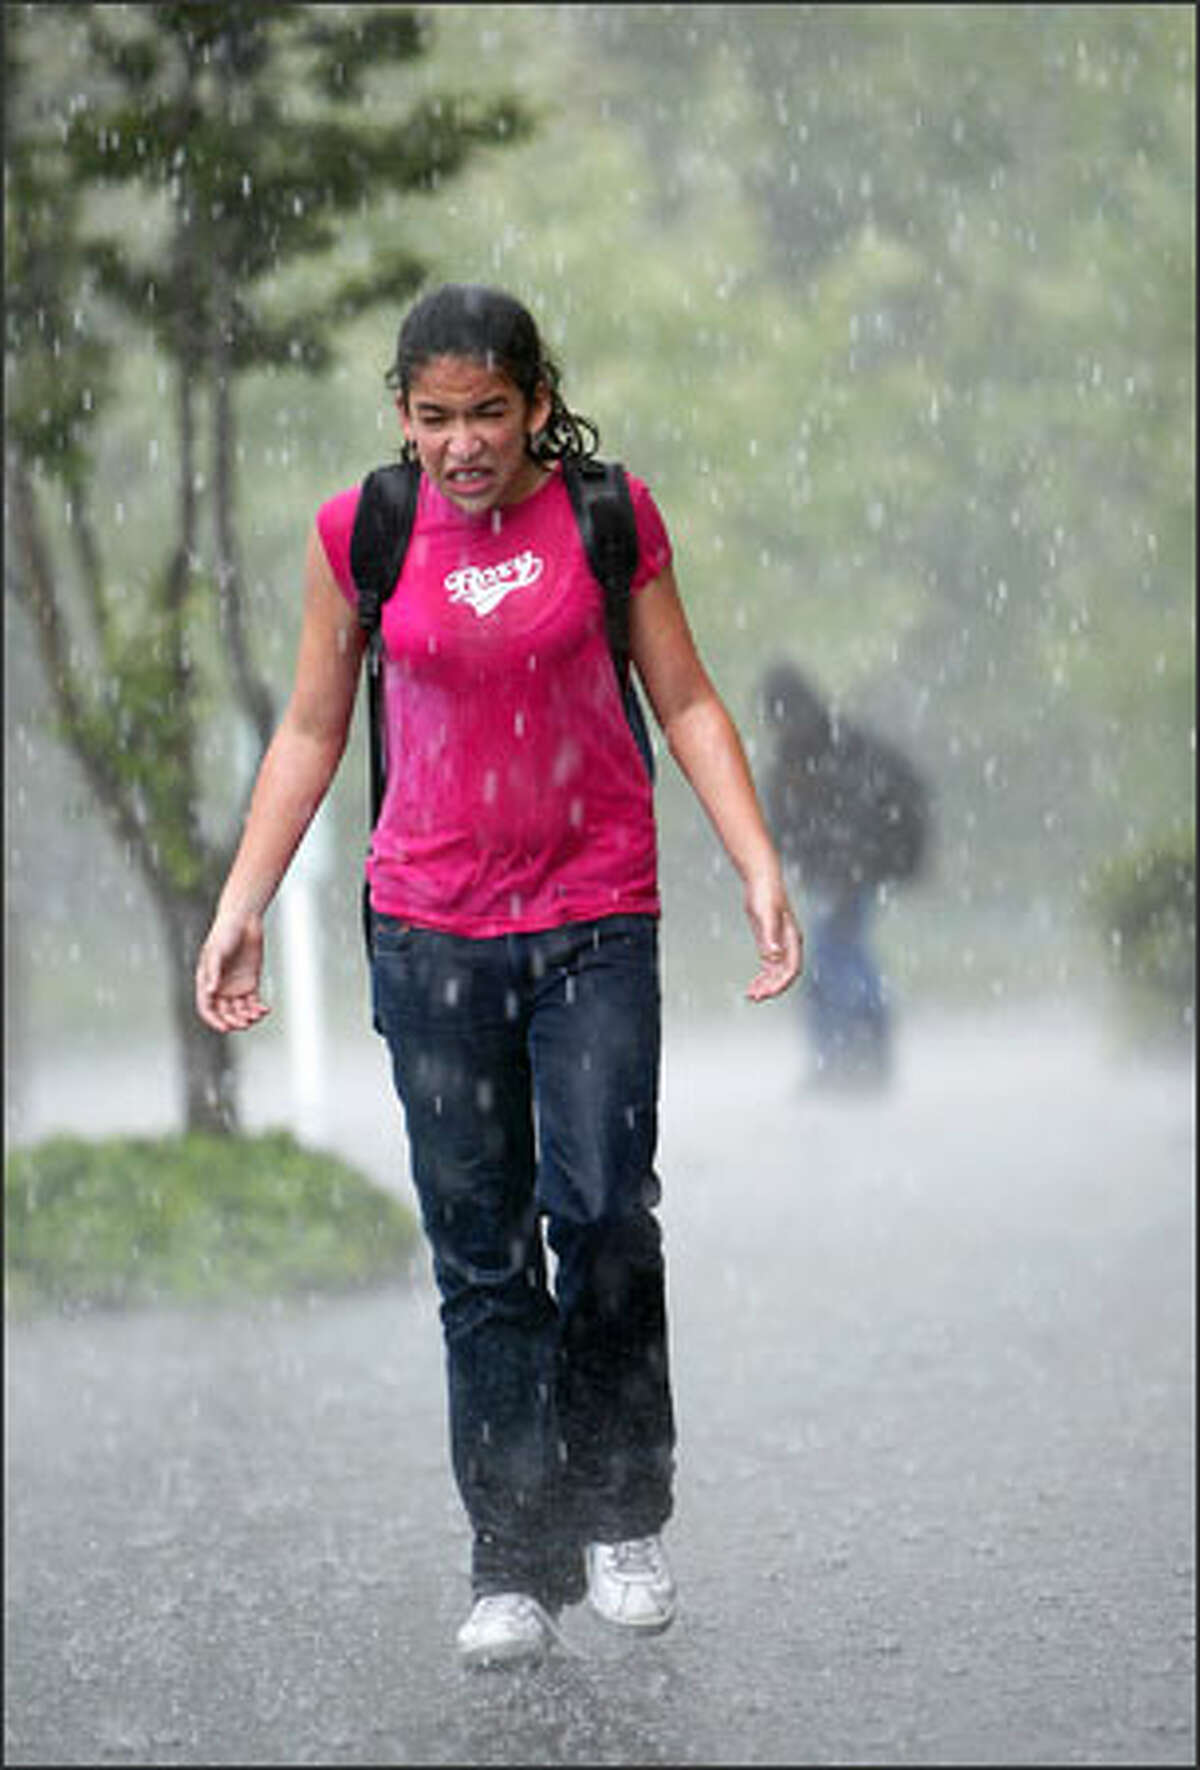 Sarah Taylor, 13, was caught off guard by a storm as she walked home from school in Federal Way.